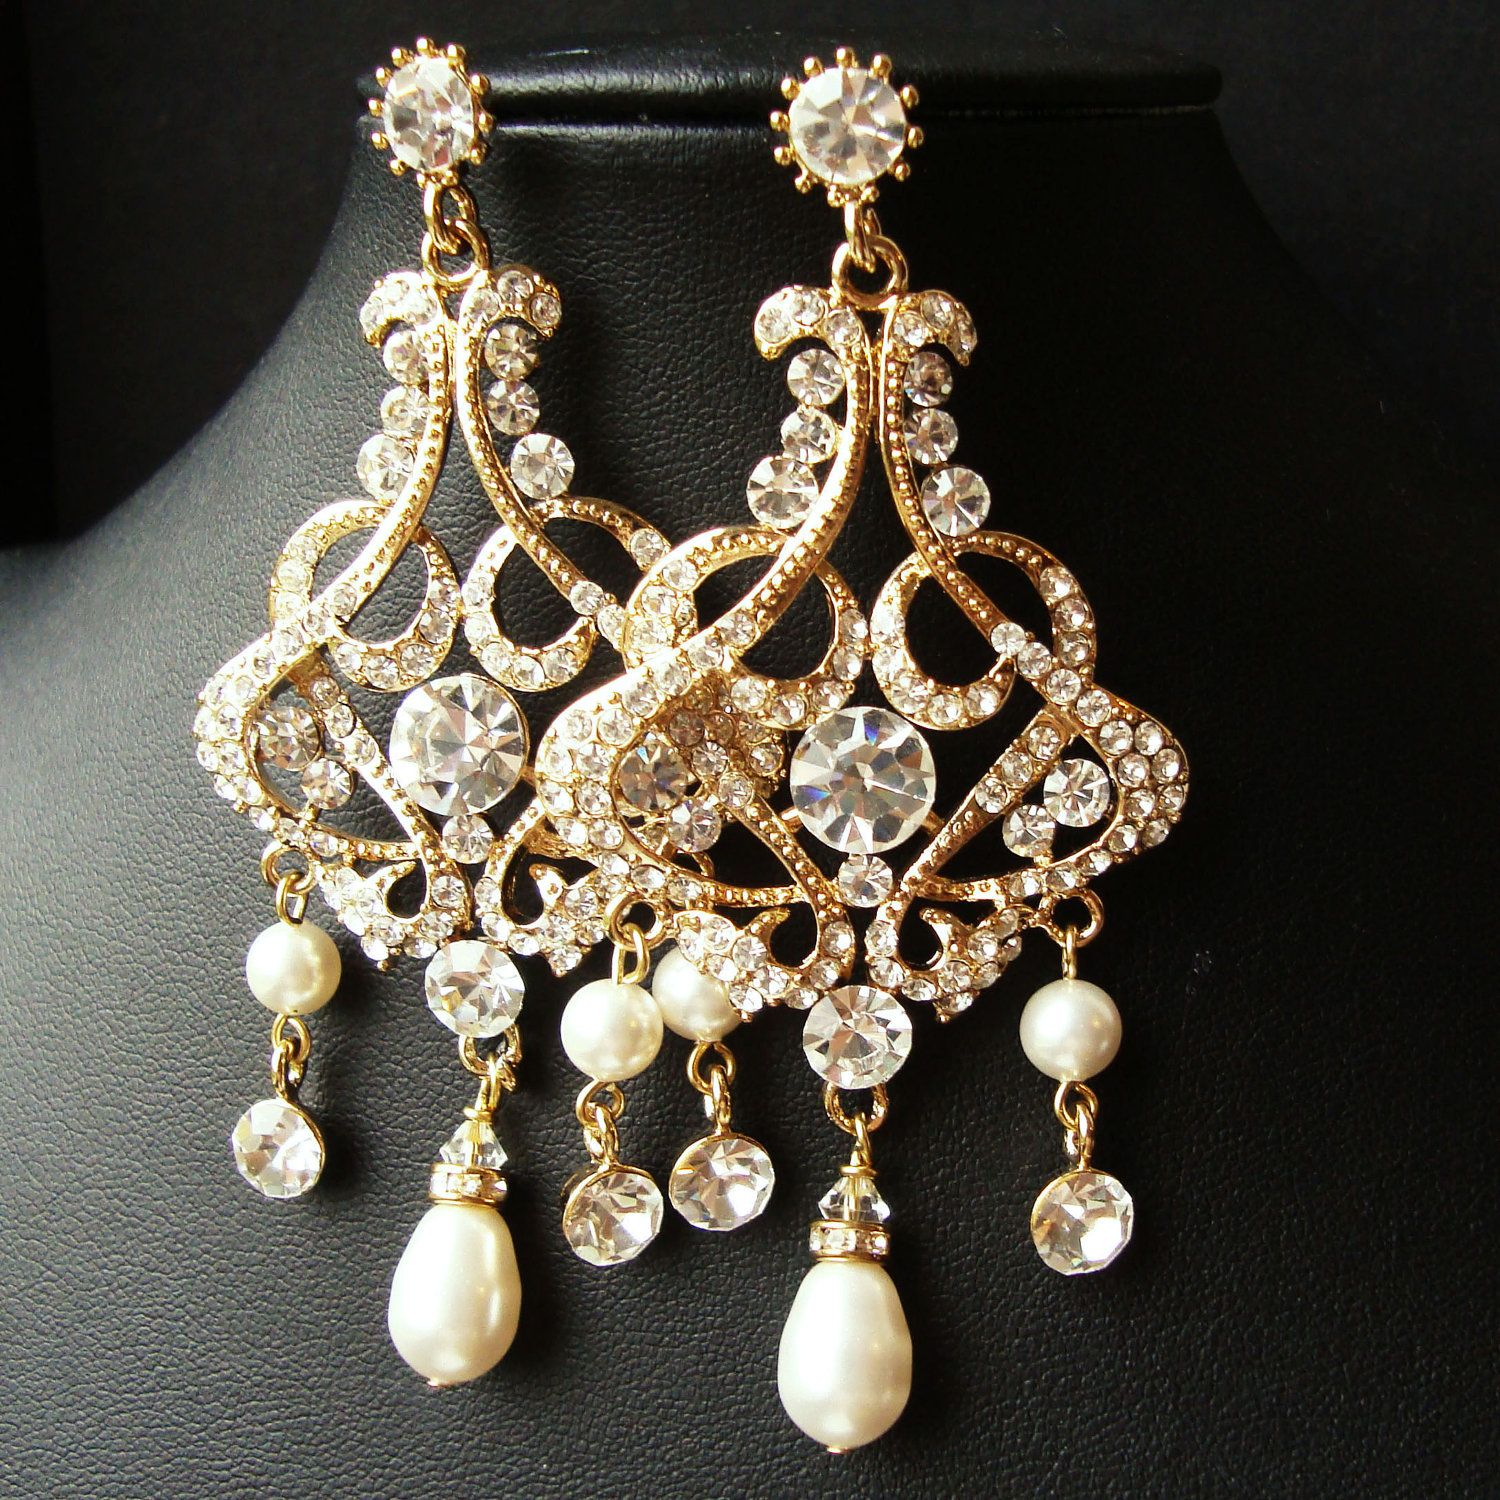 Gold chandelier bridal wedding earrings statement gold bridal gold chandelier bridal wedding earrings statement gold bridal earrings vintage style rhinestone earrings arubaitofo Gallery